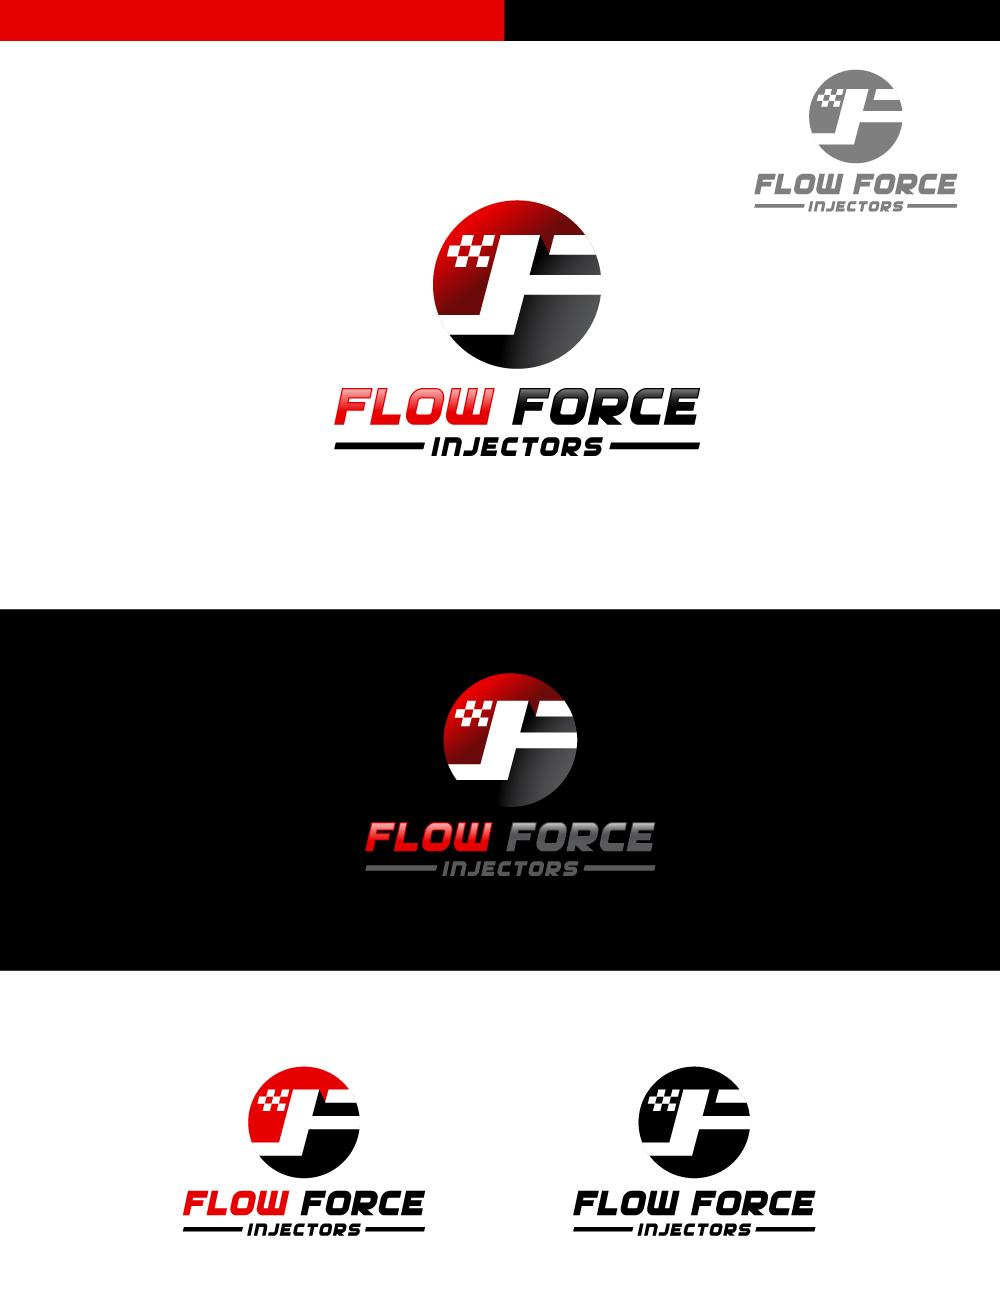 Logo Design by Tauhid Shaikh - Entry No. 27 in the Logo Design Contest Fun Logo Design for Flow Force Injectors.